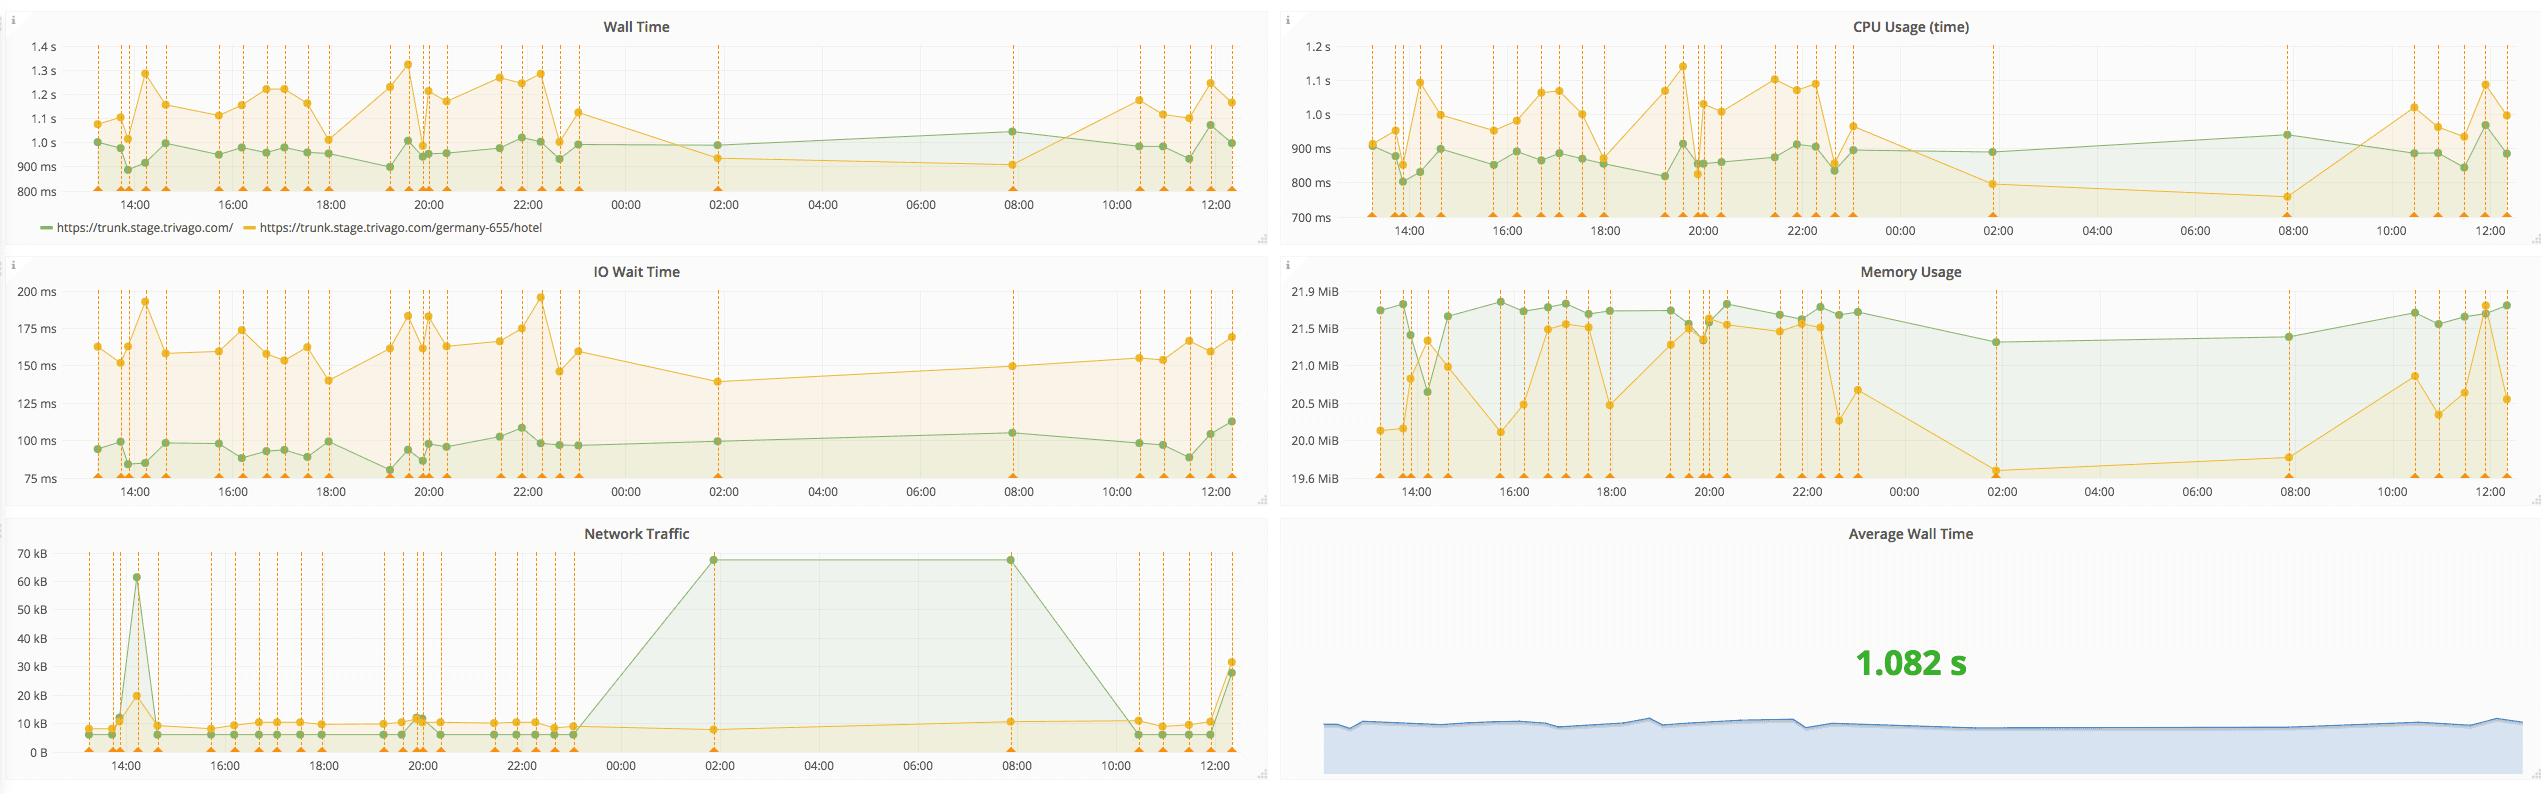 Dashboard built with the data gathered by blackfire